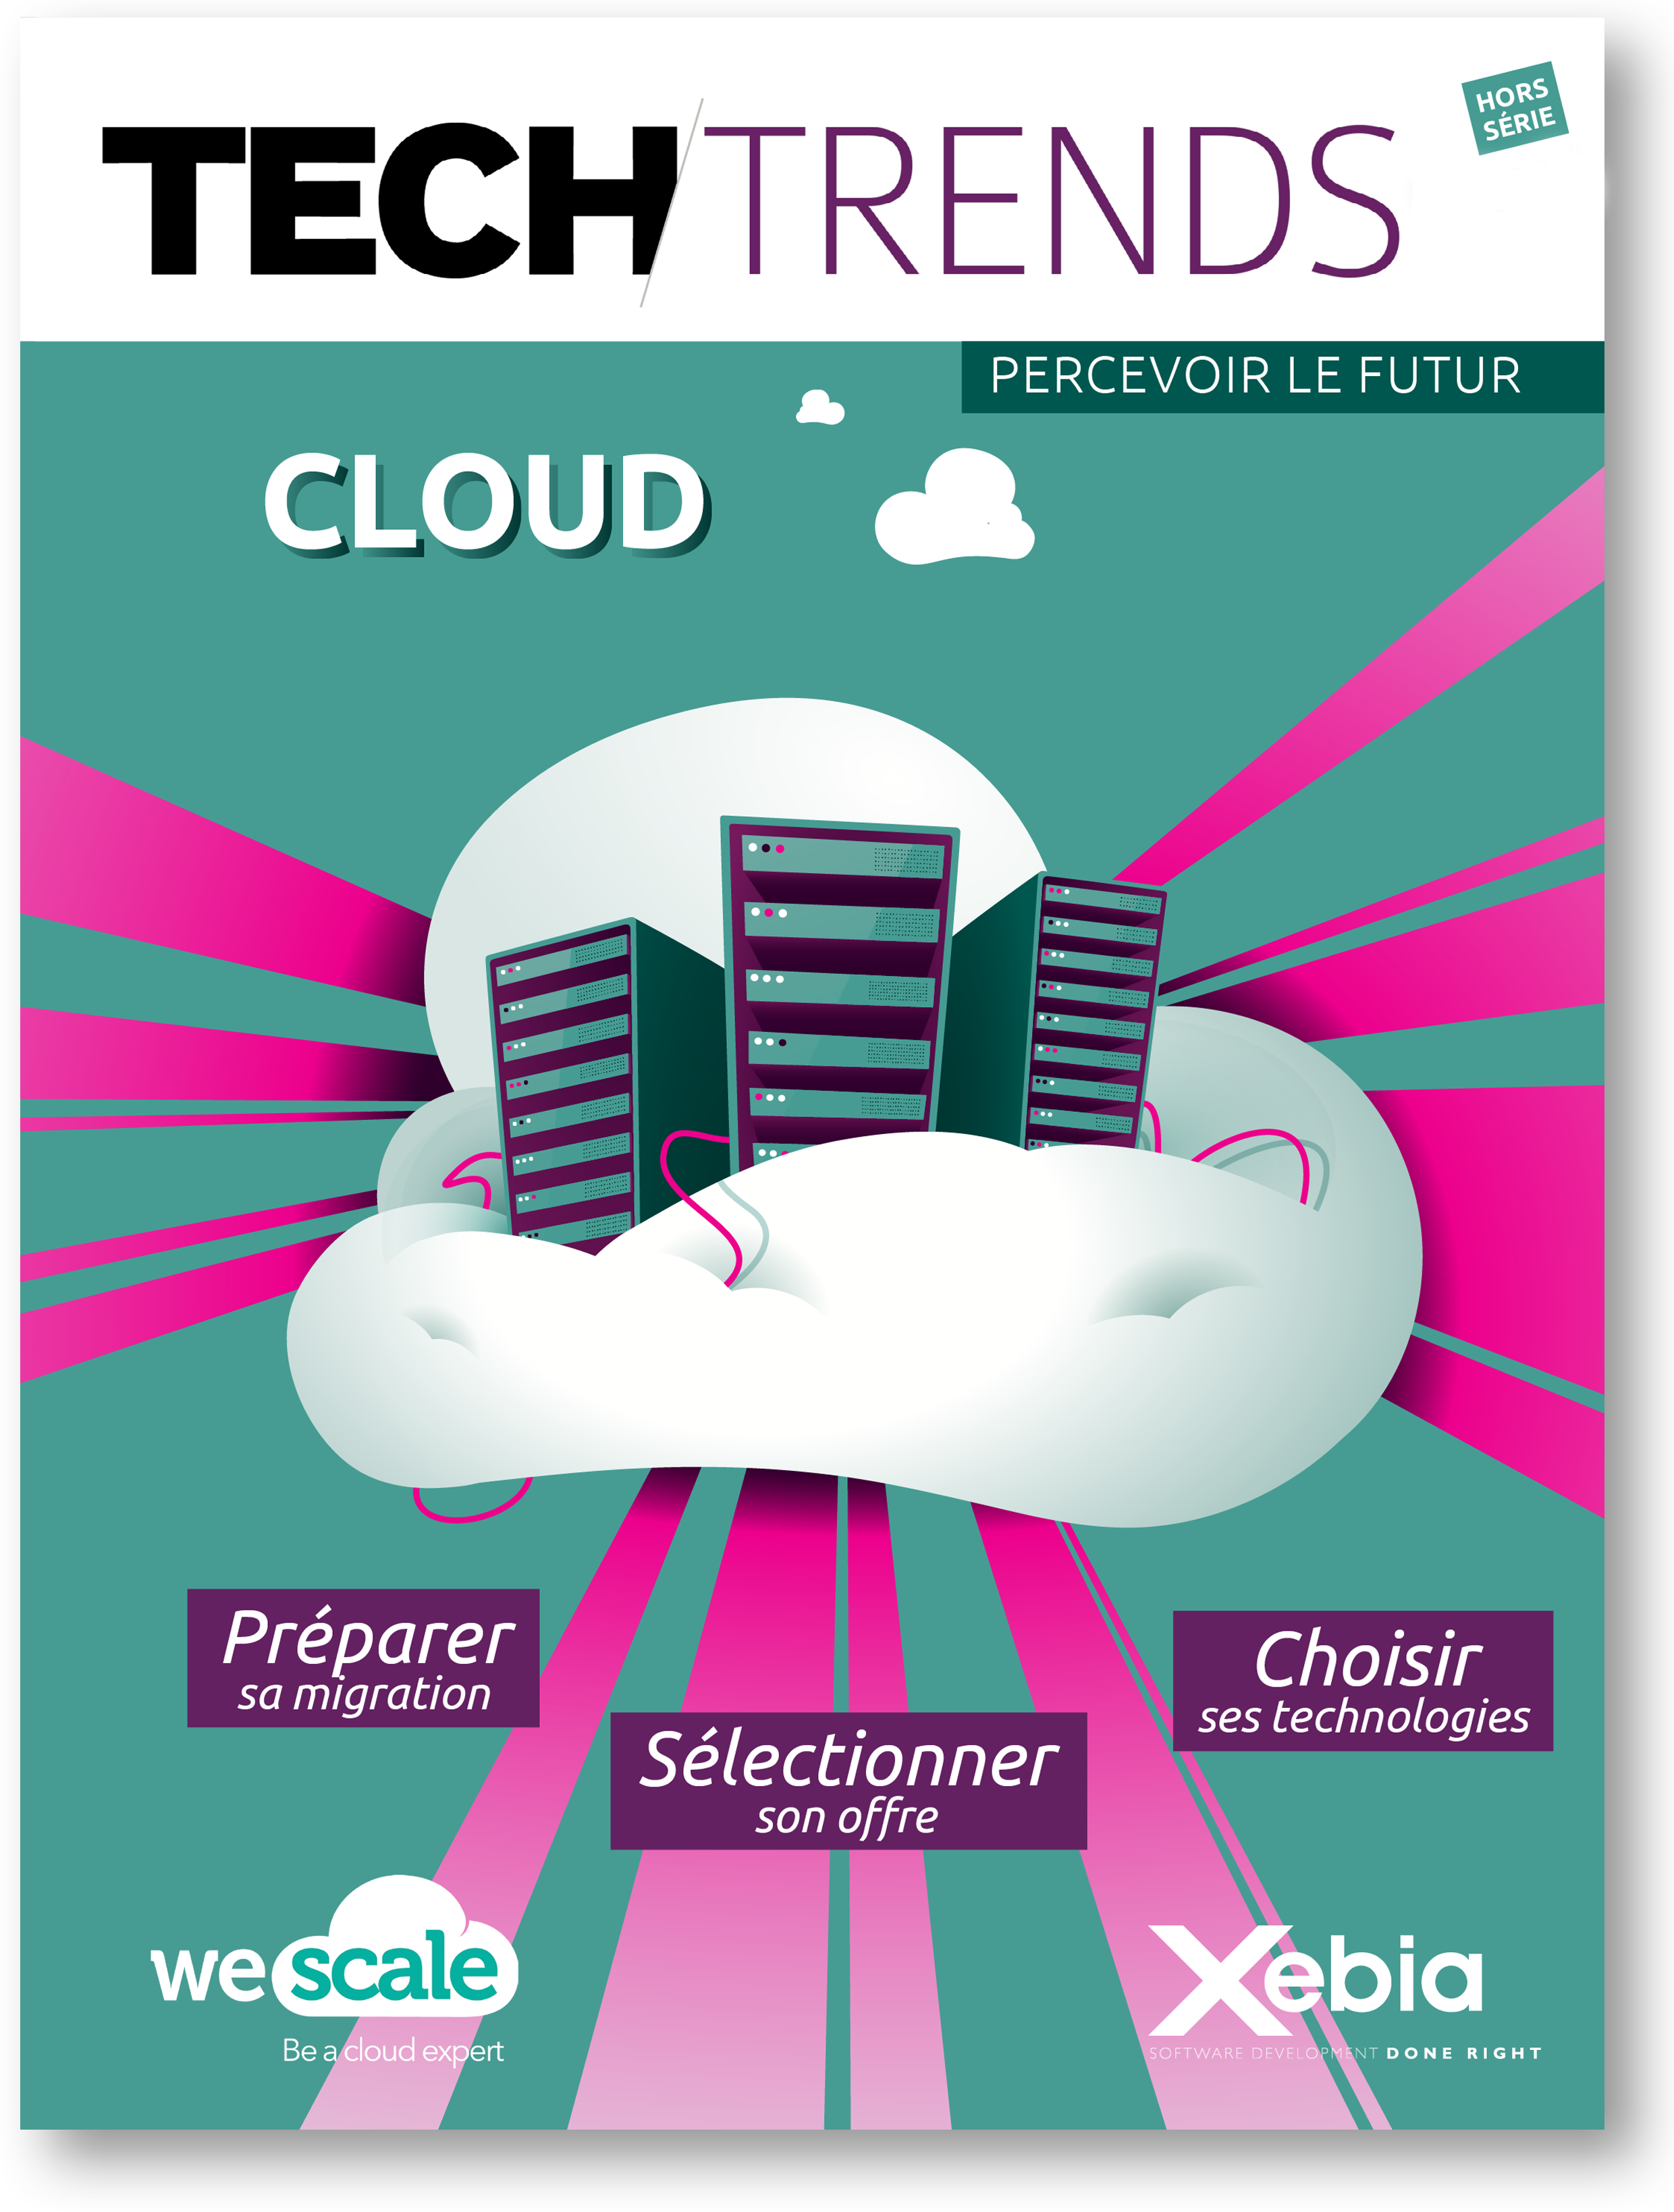 techtrends-cover-cloud.png